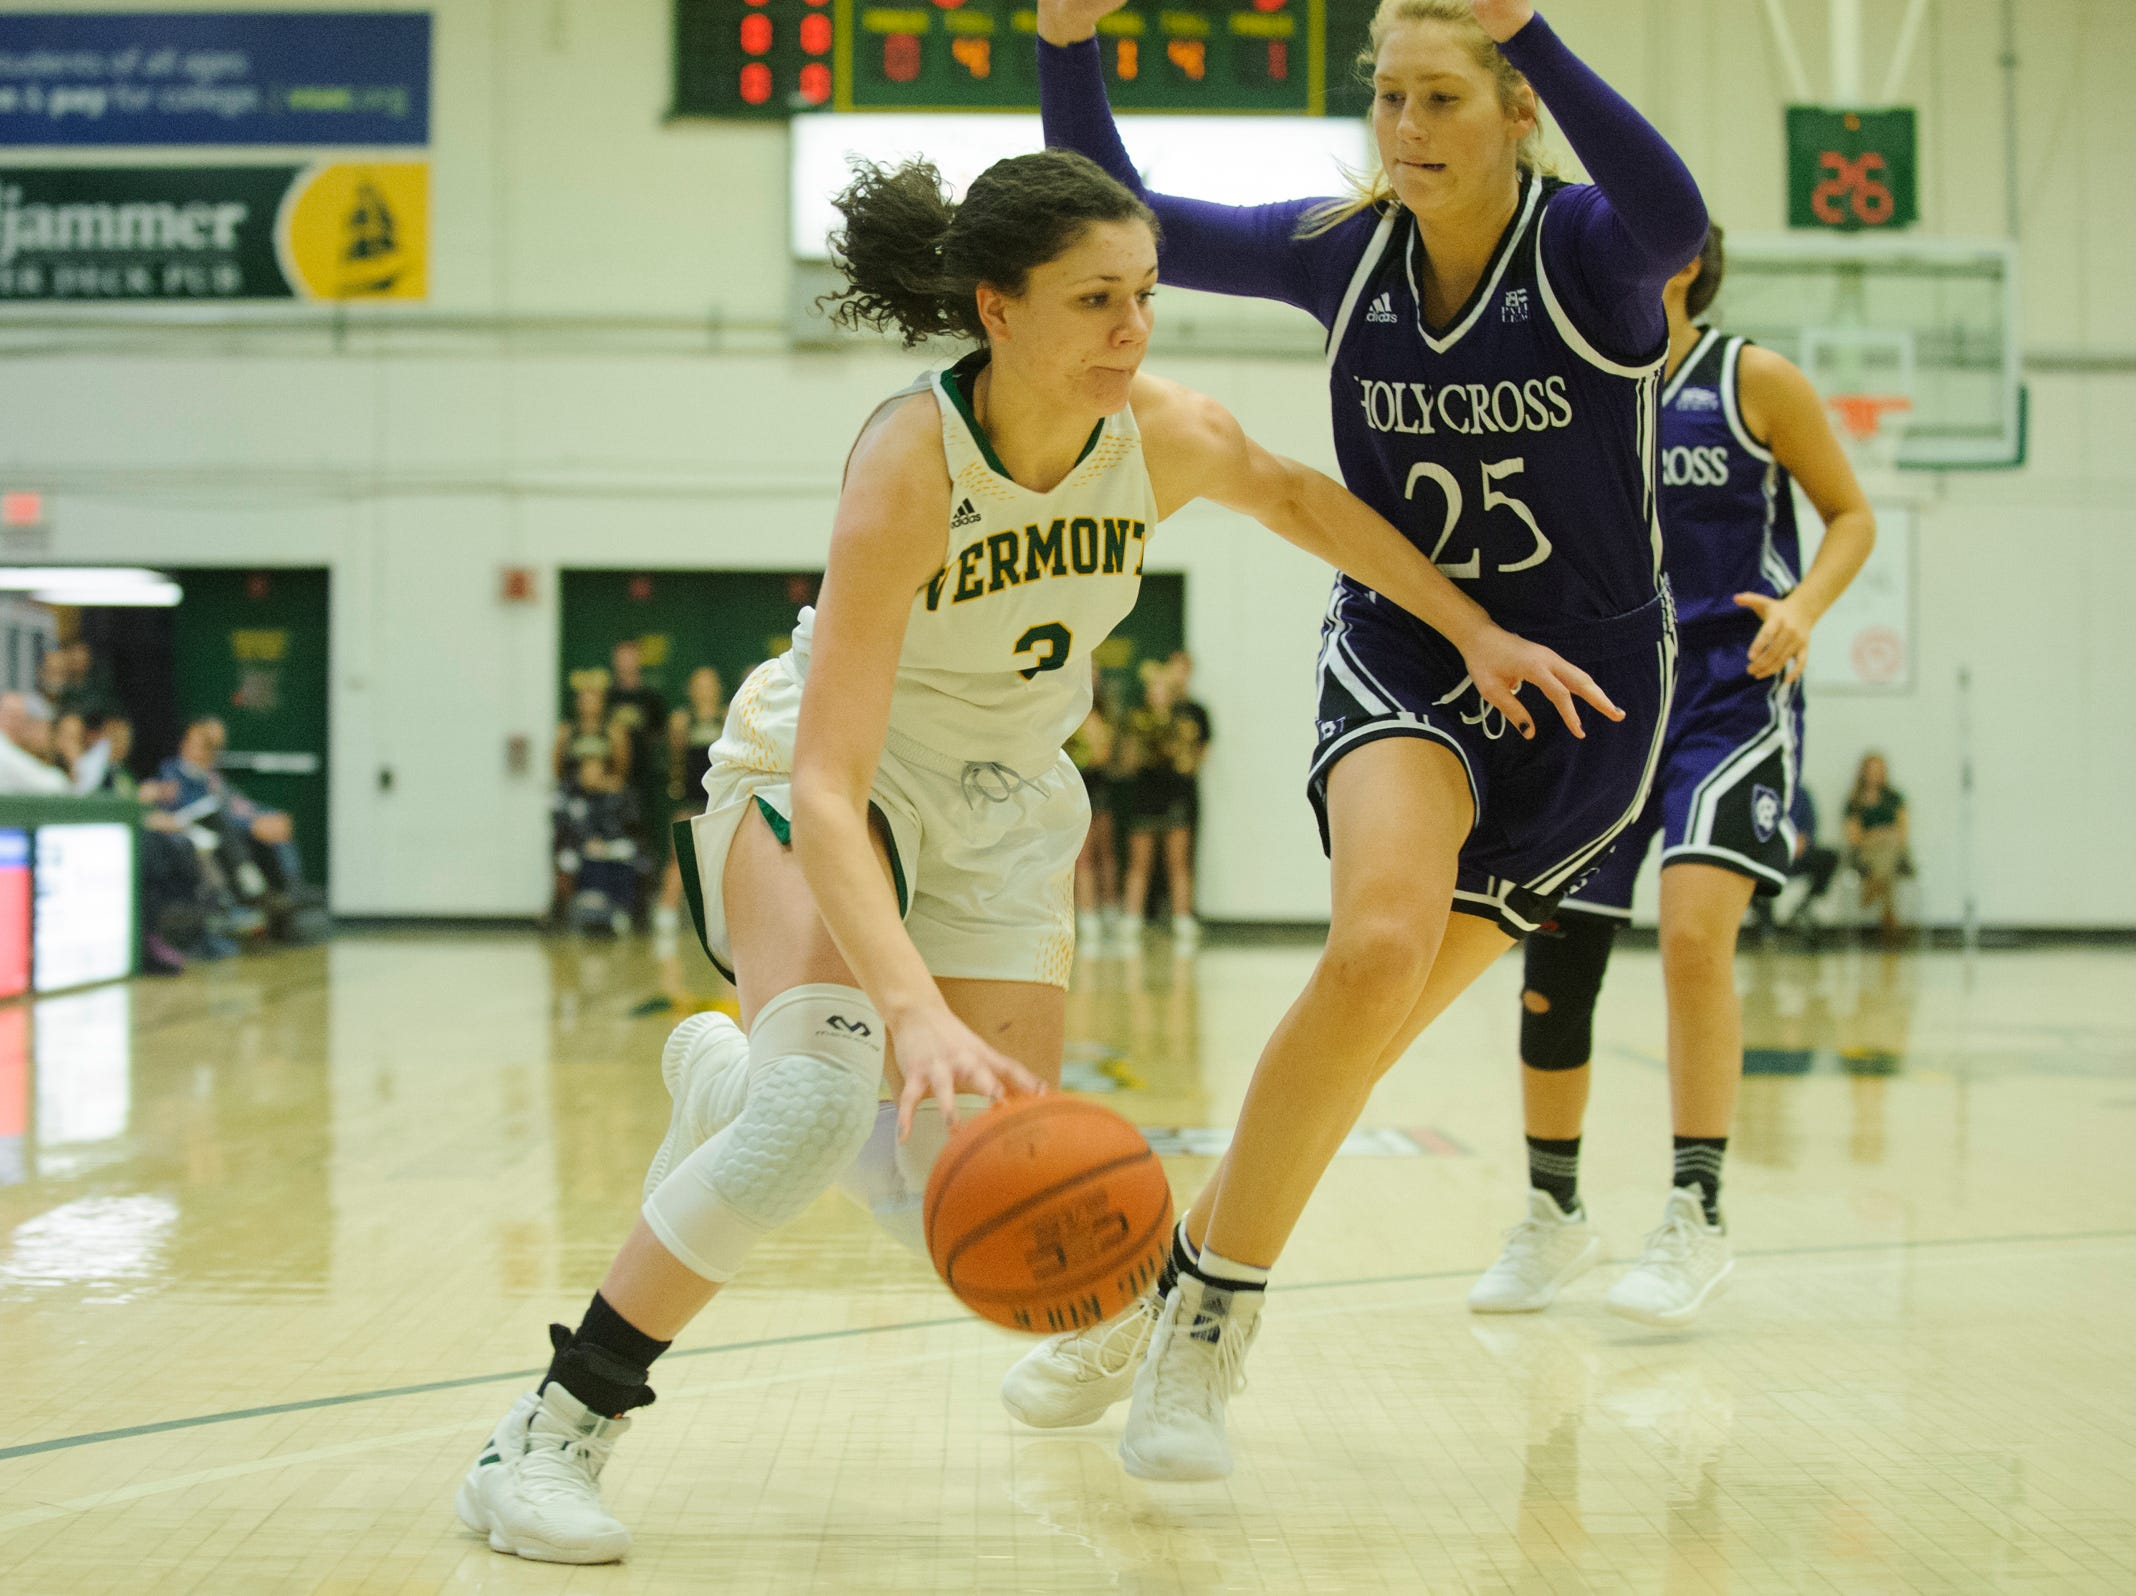 Vermont's Sarah Wells (3) drives to the hoop past Holy Cross' Lauren Manis (25) during the women's basketball game between the Holy Cross Crusaders and the Vermont Catamounts at Patrick Gym on Wednesday night November 28, 2018 in Burlington.